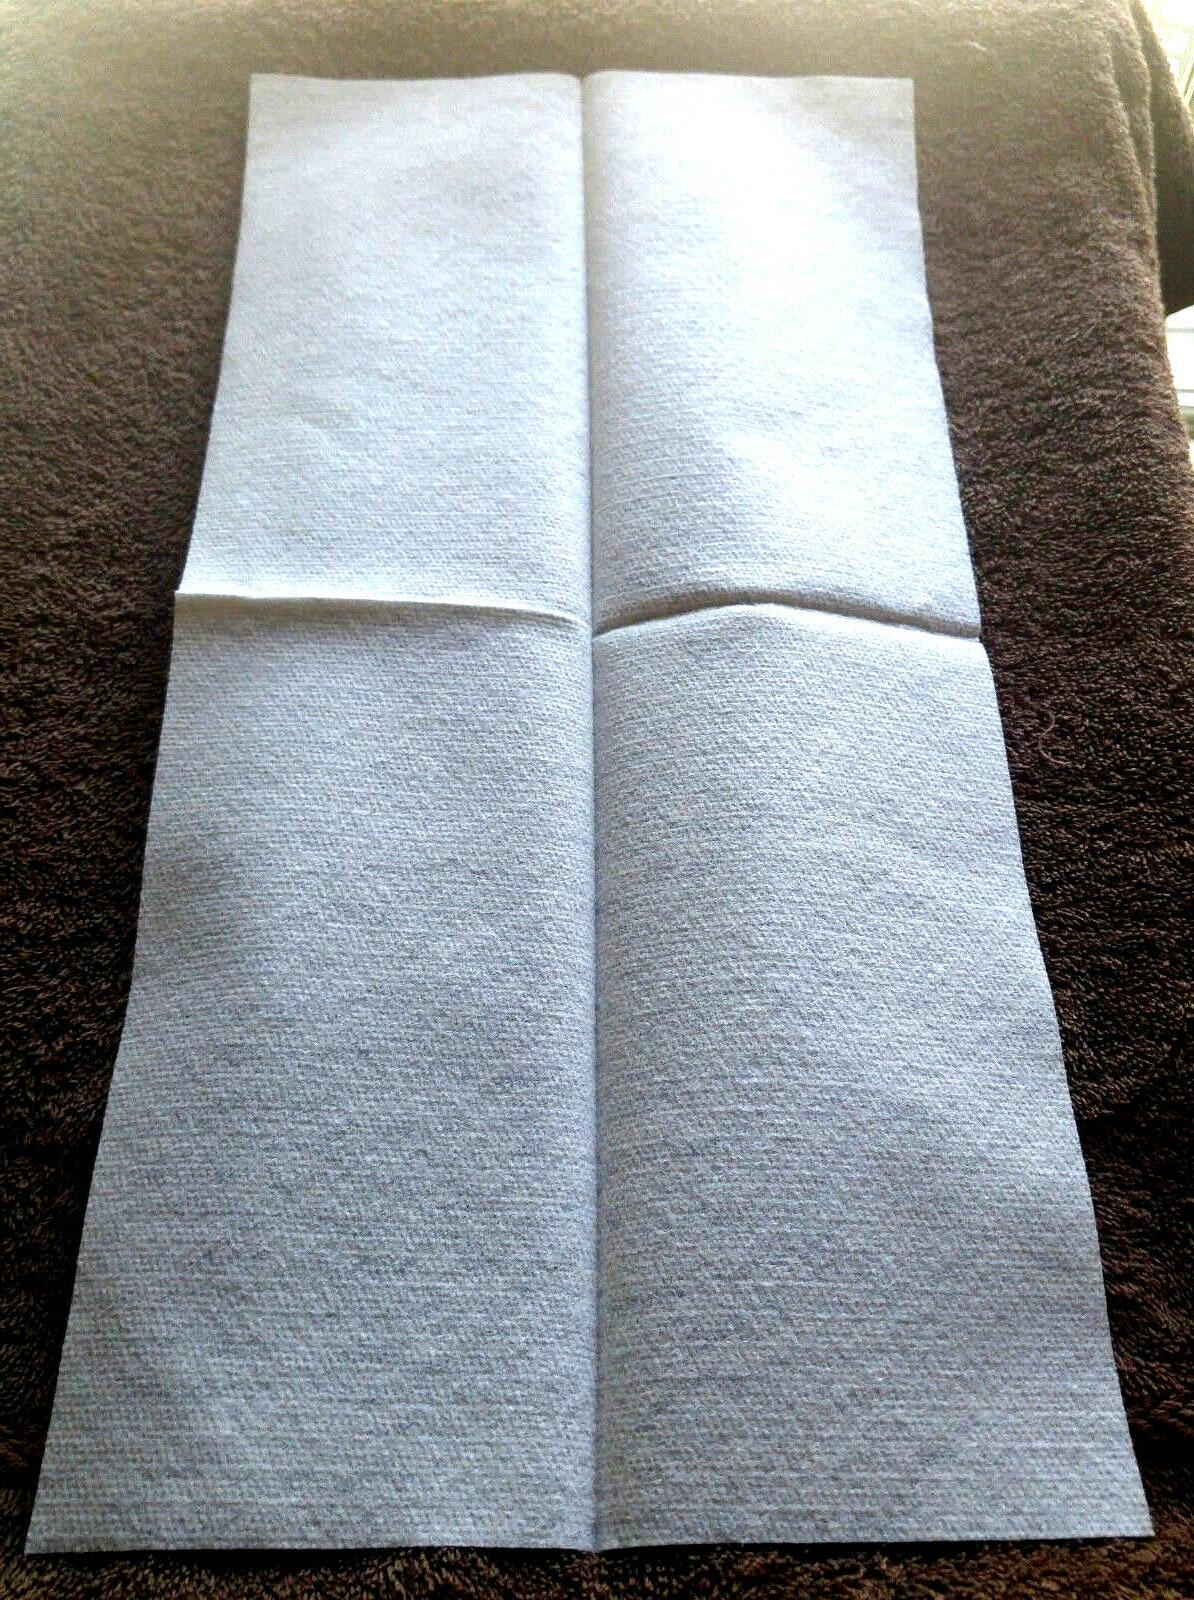 30 Paper Guest Hand For Dinne,Clean up White